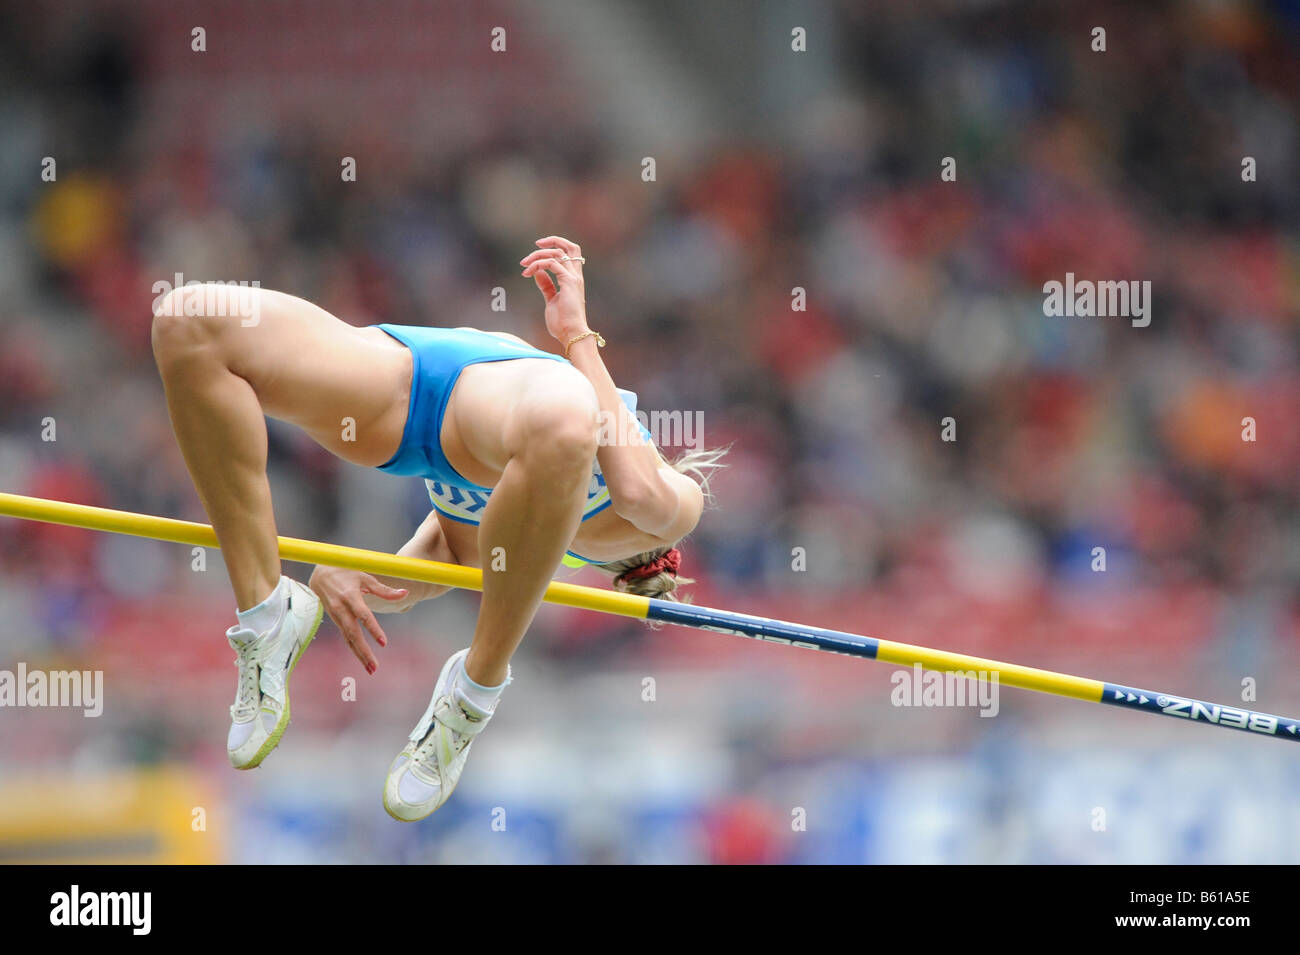 Marina AITOVA, KAZ, hits the crossbar, High Jump, at the IAAF 2008 World Athletics Final for track and field in - Stock Image